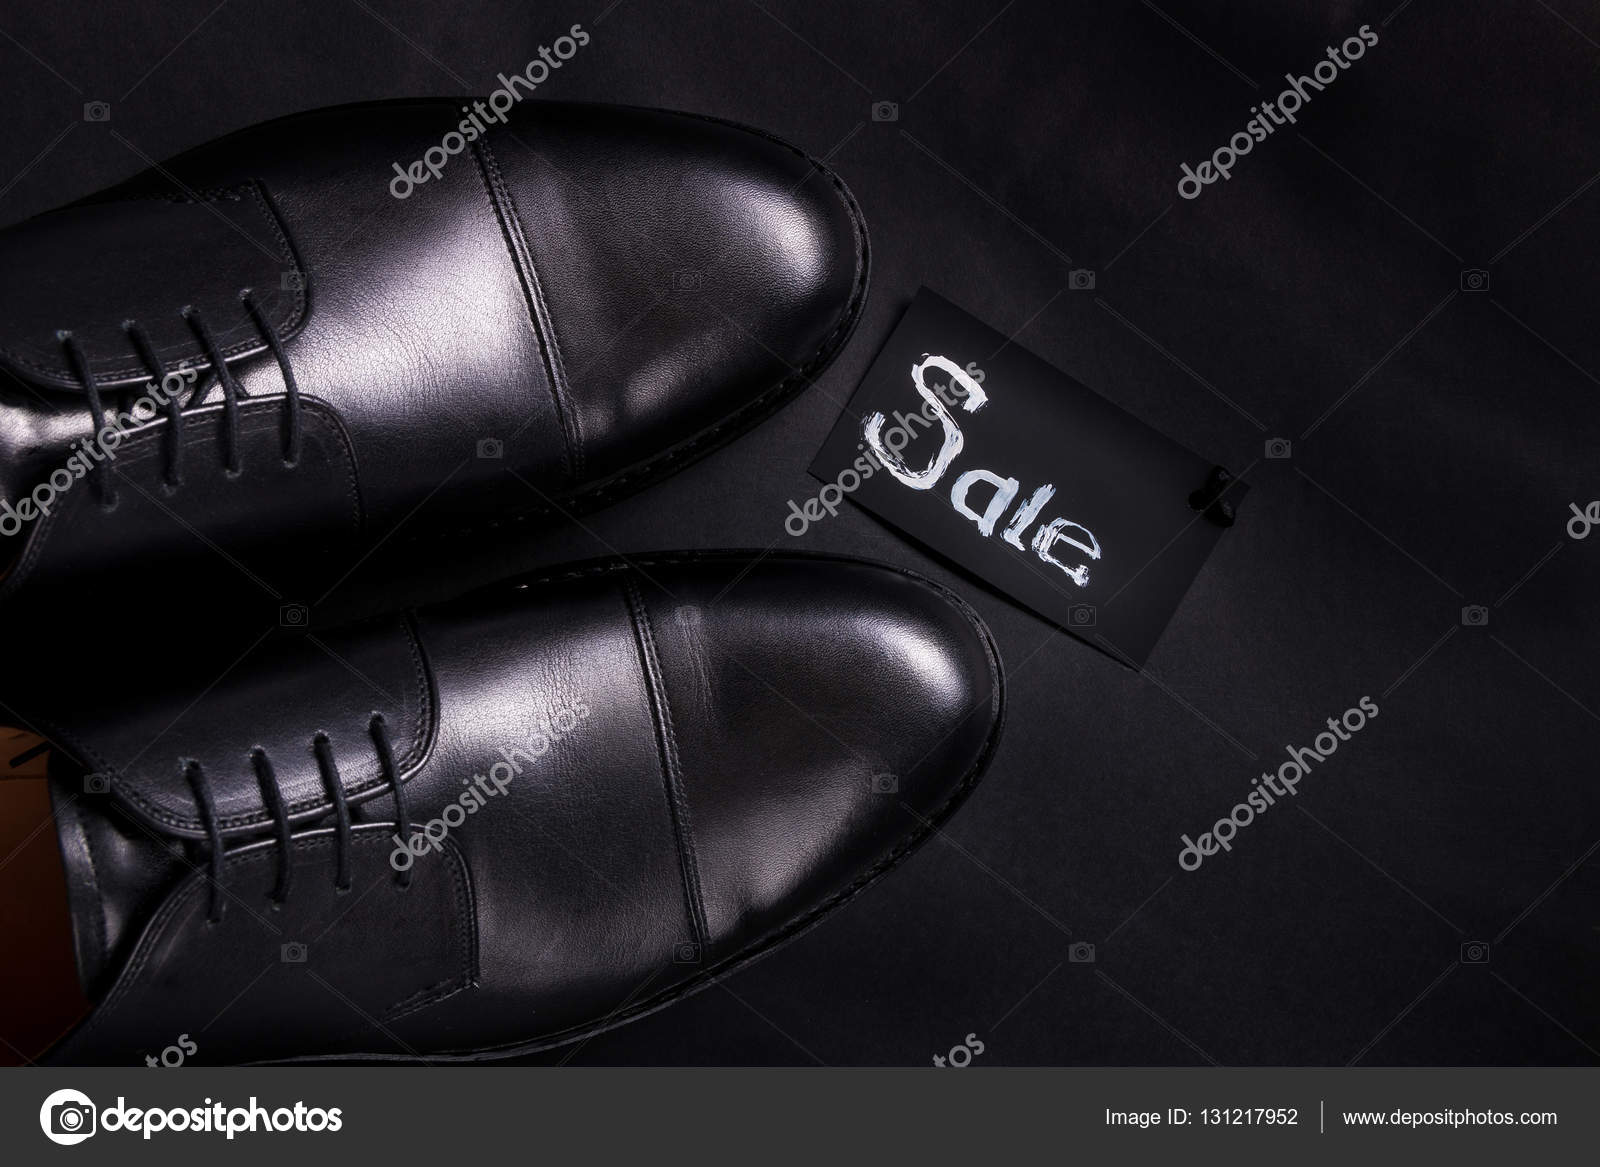 Sale sign. Black oxford shoes on